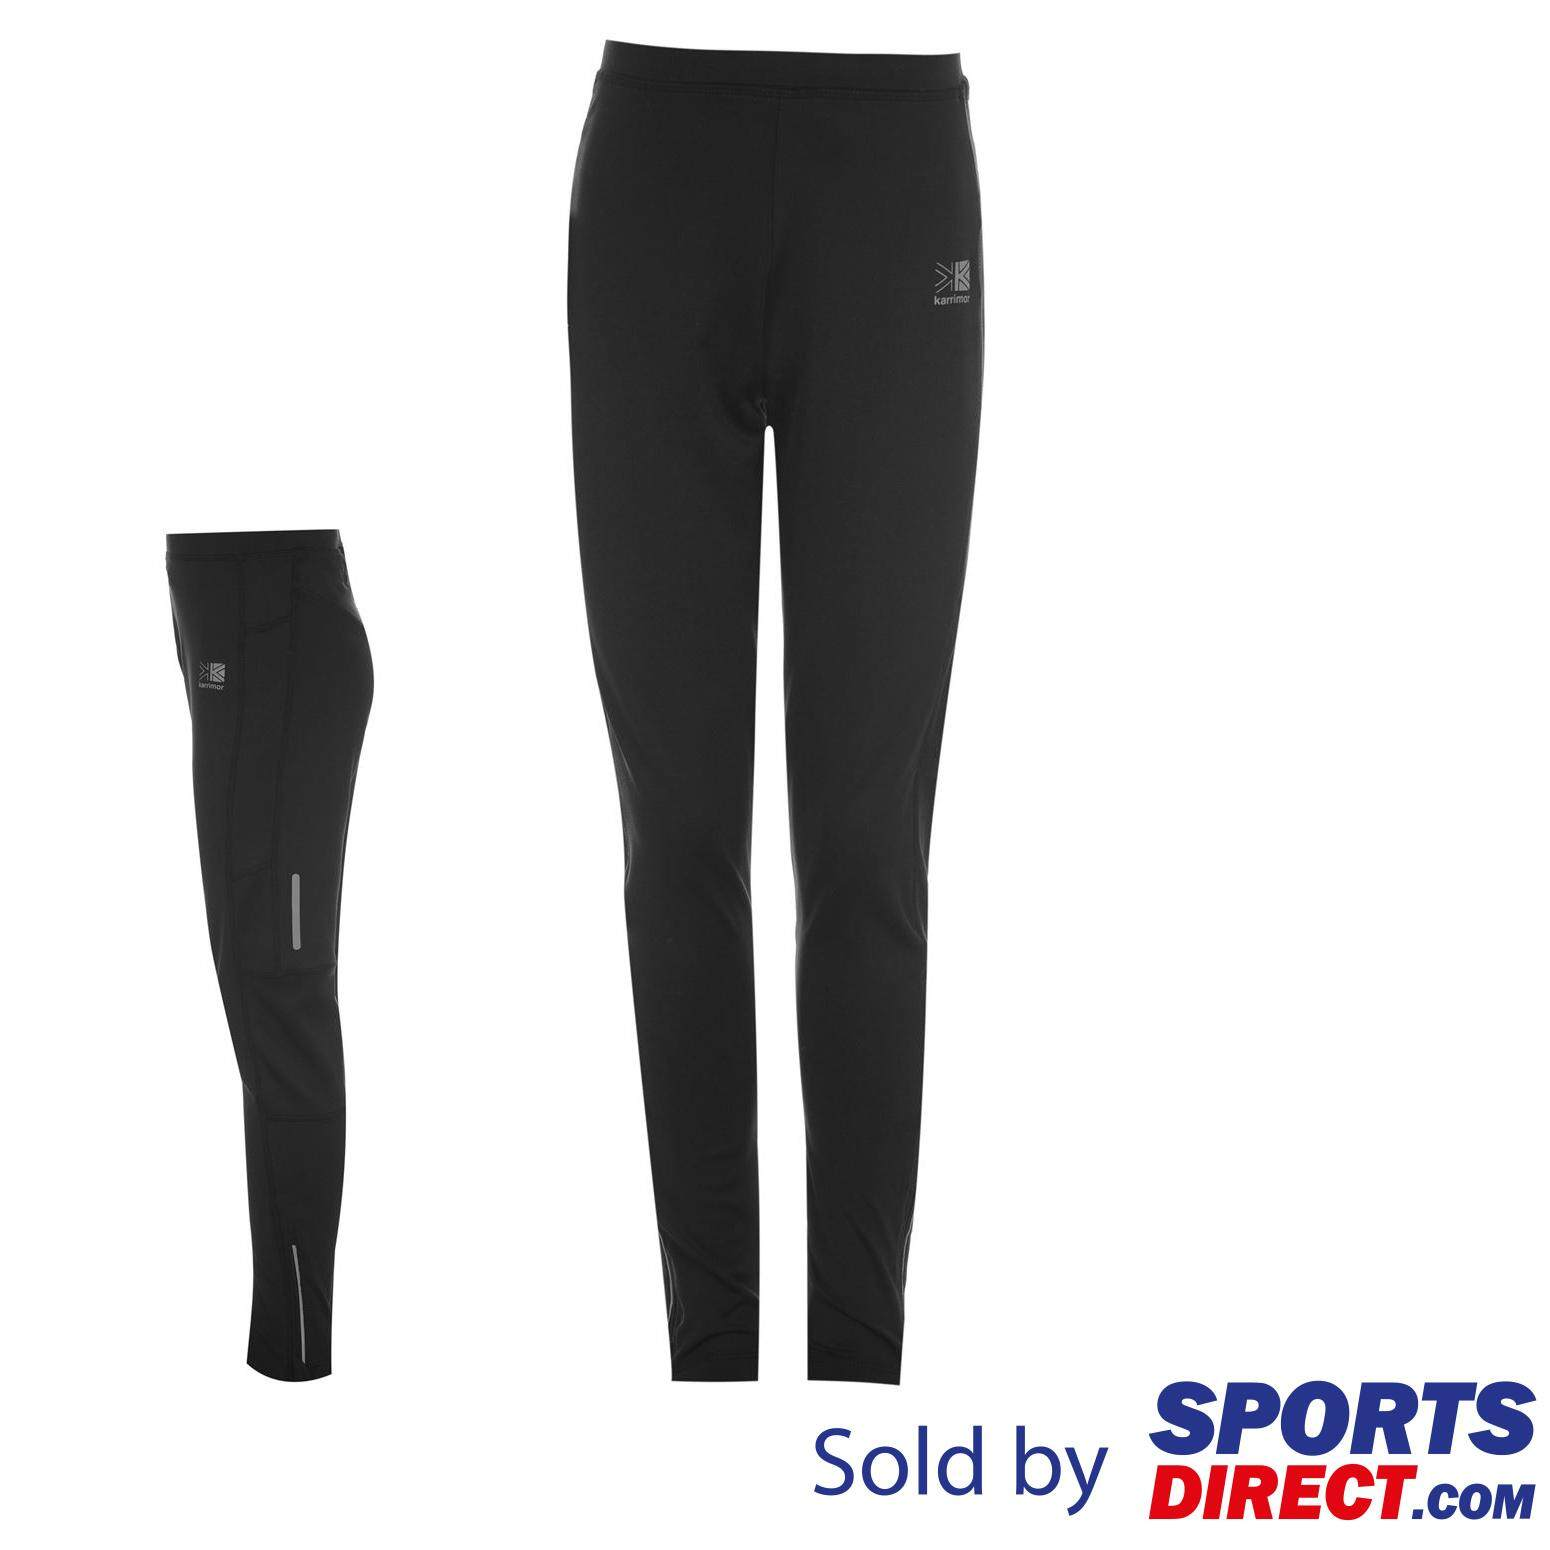 Karrimor Kids Boys Running Tights (black) By Sports Direct Mst Sdn Bhd.